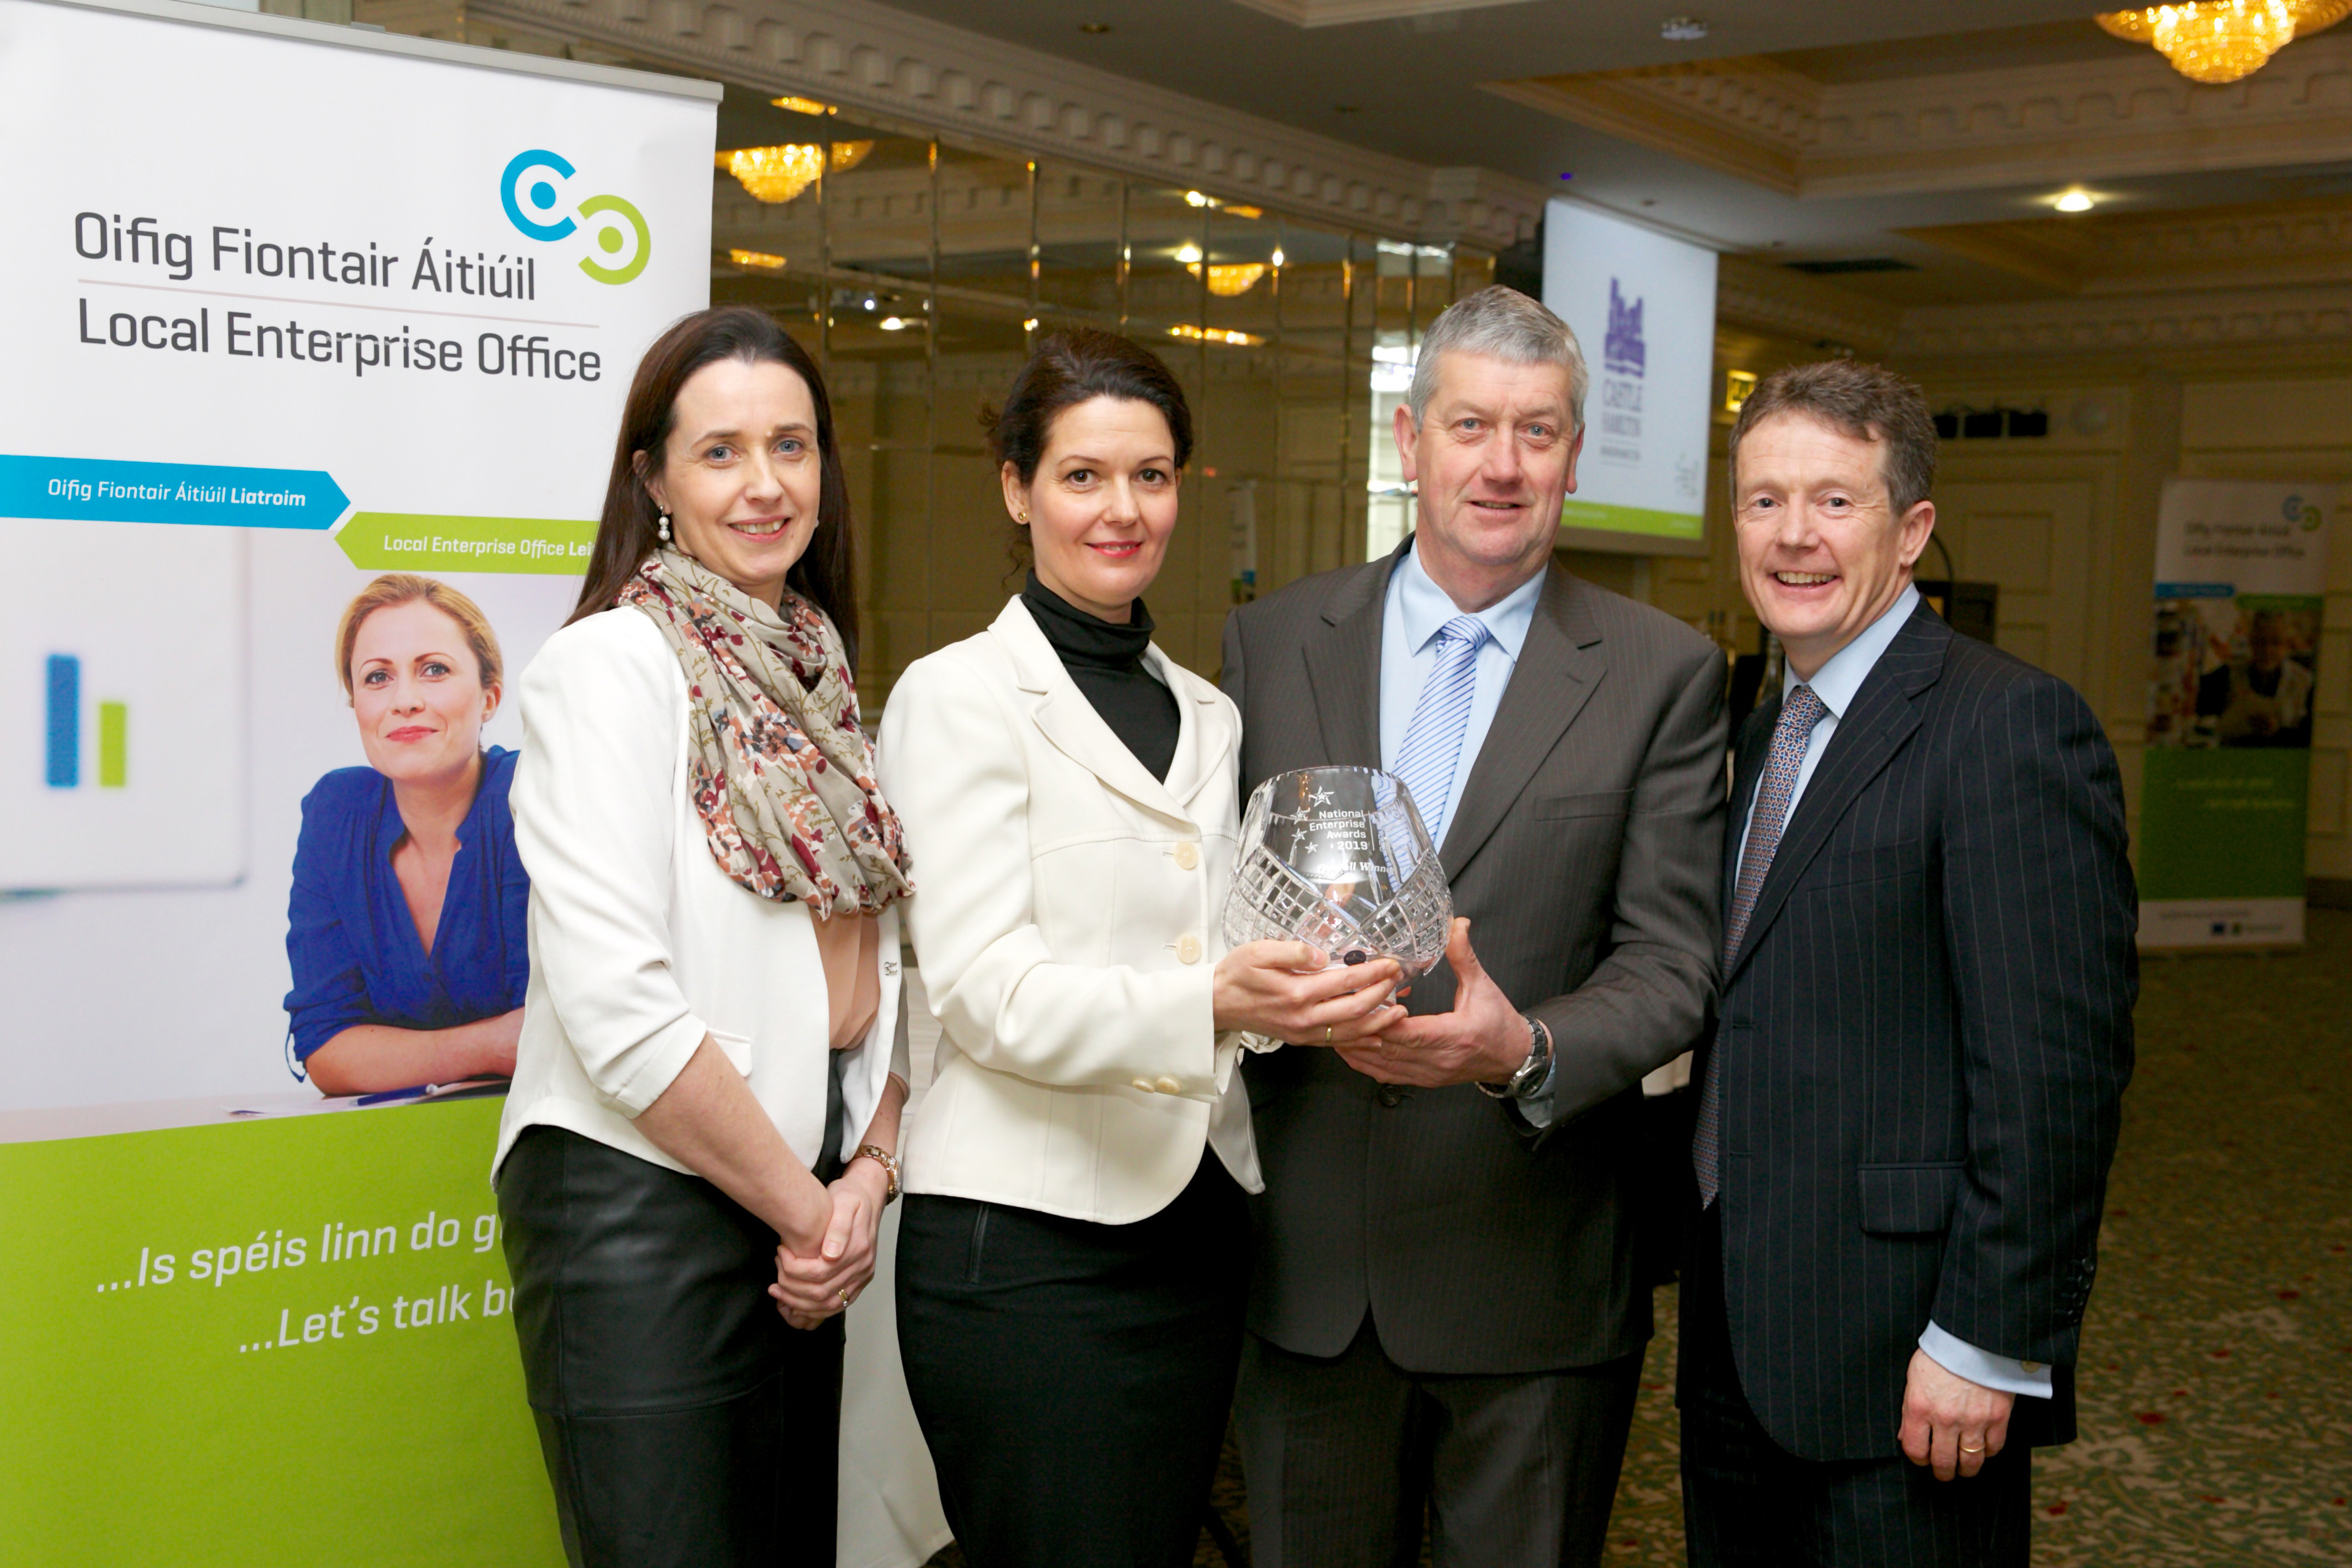 Art of Coffee, Winner National Enterprise Awards County Final Leitrim